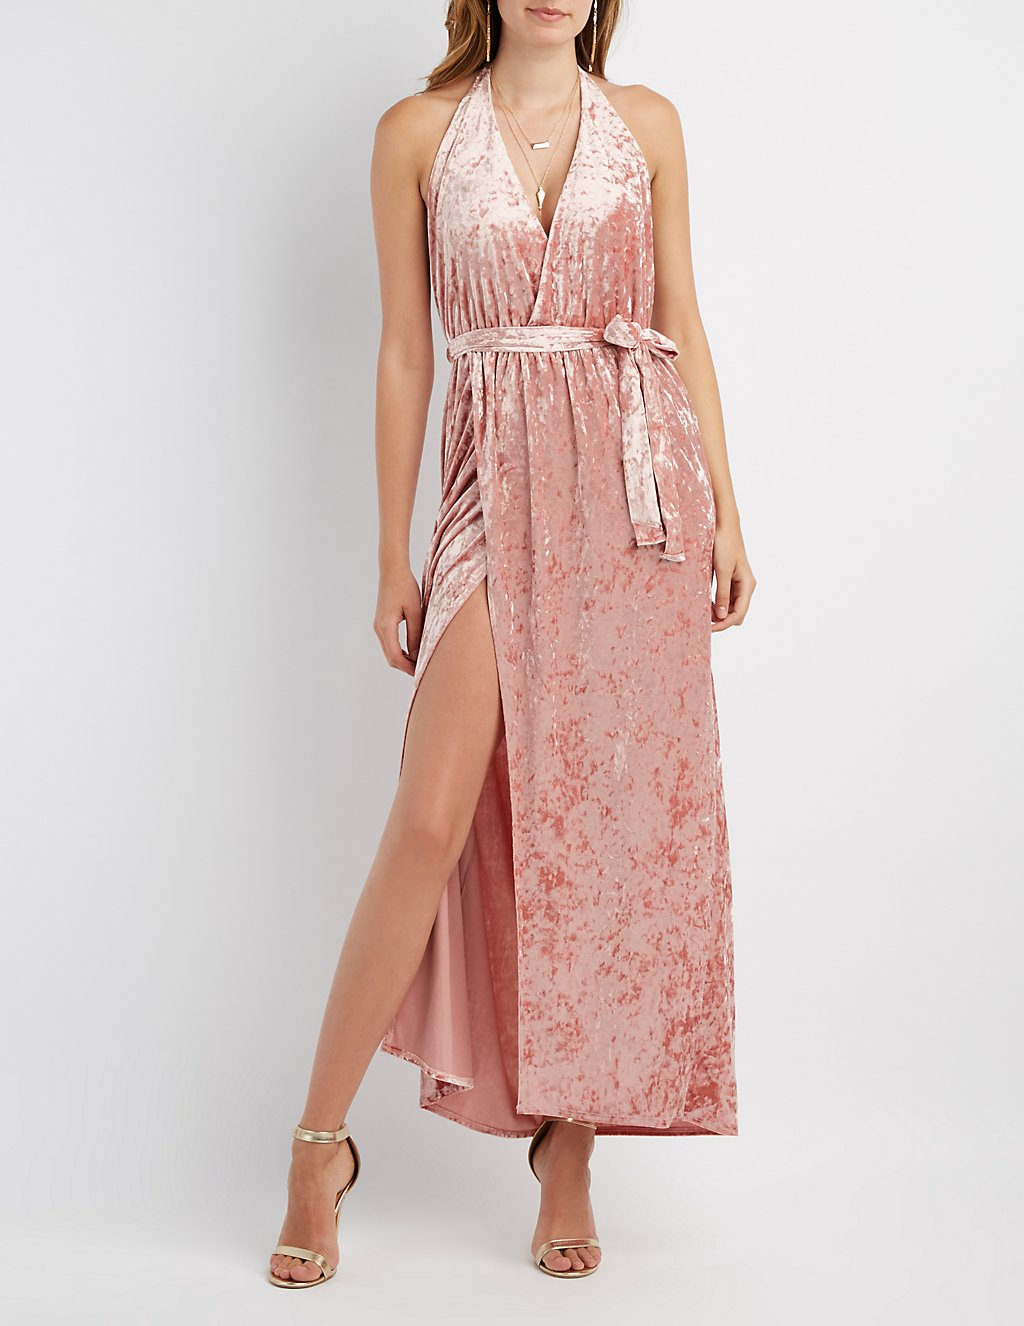 Lace dresses with sleeves cheapoair